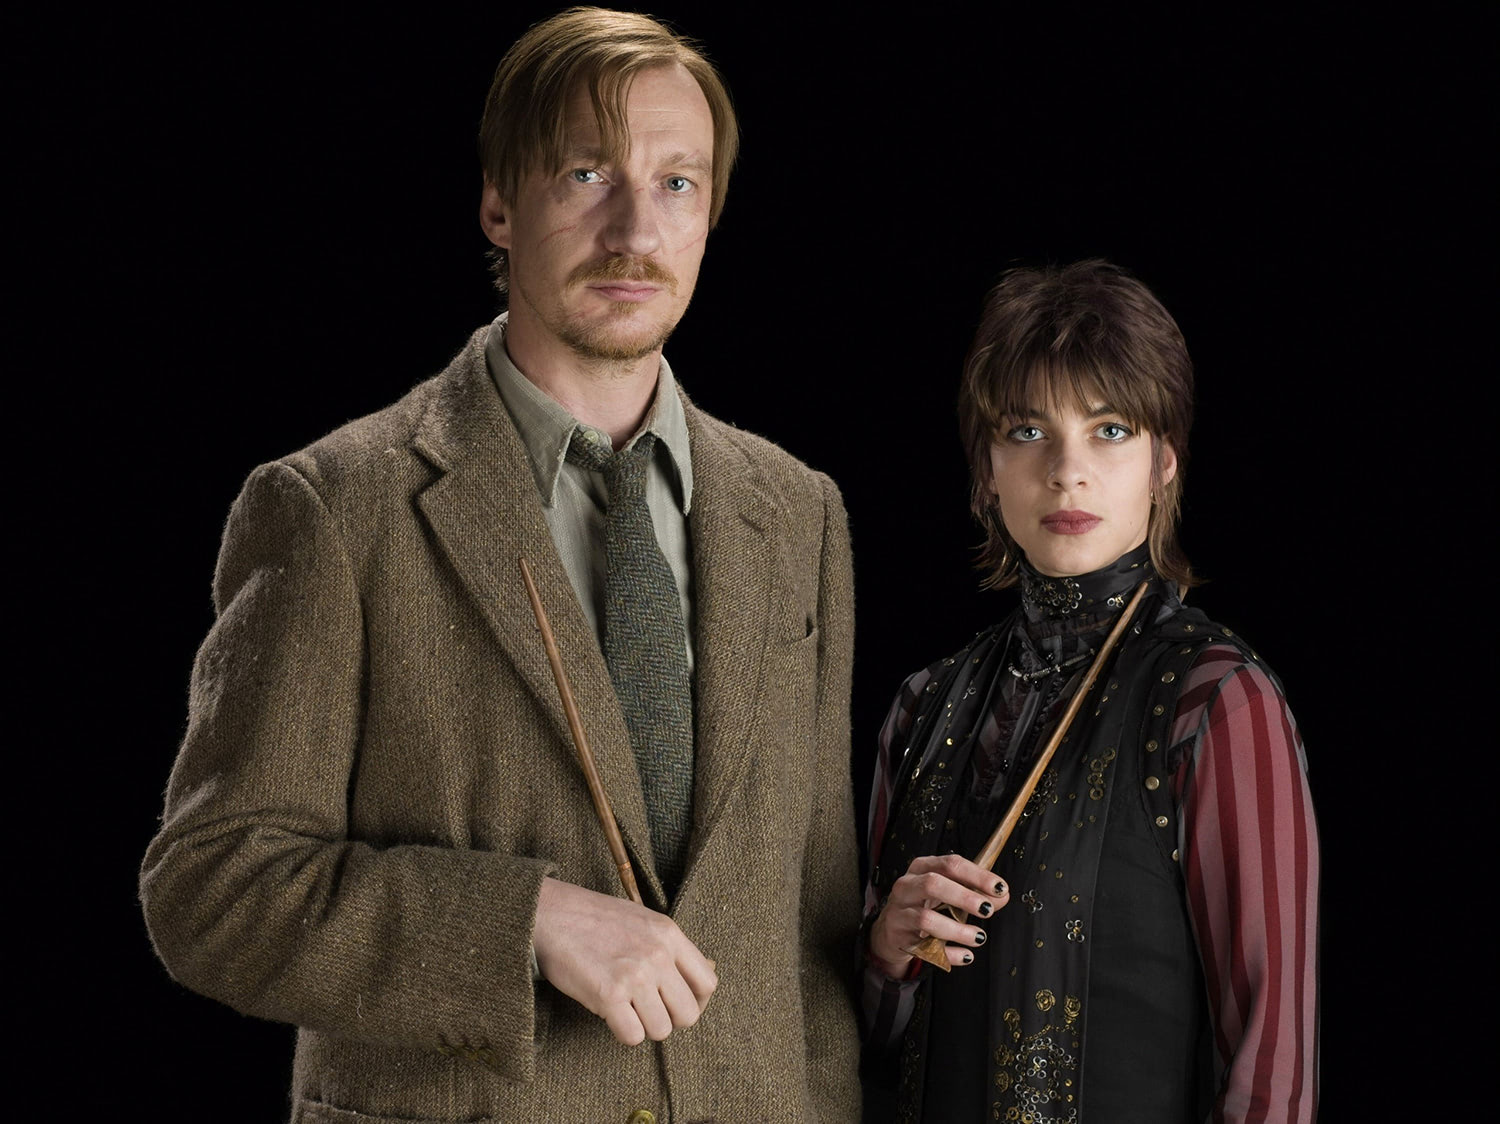 Portrait of Tonks and Lupin